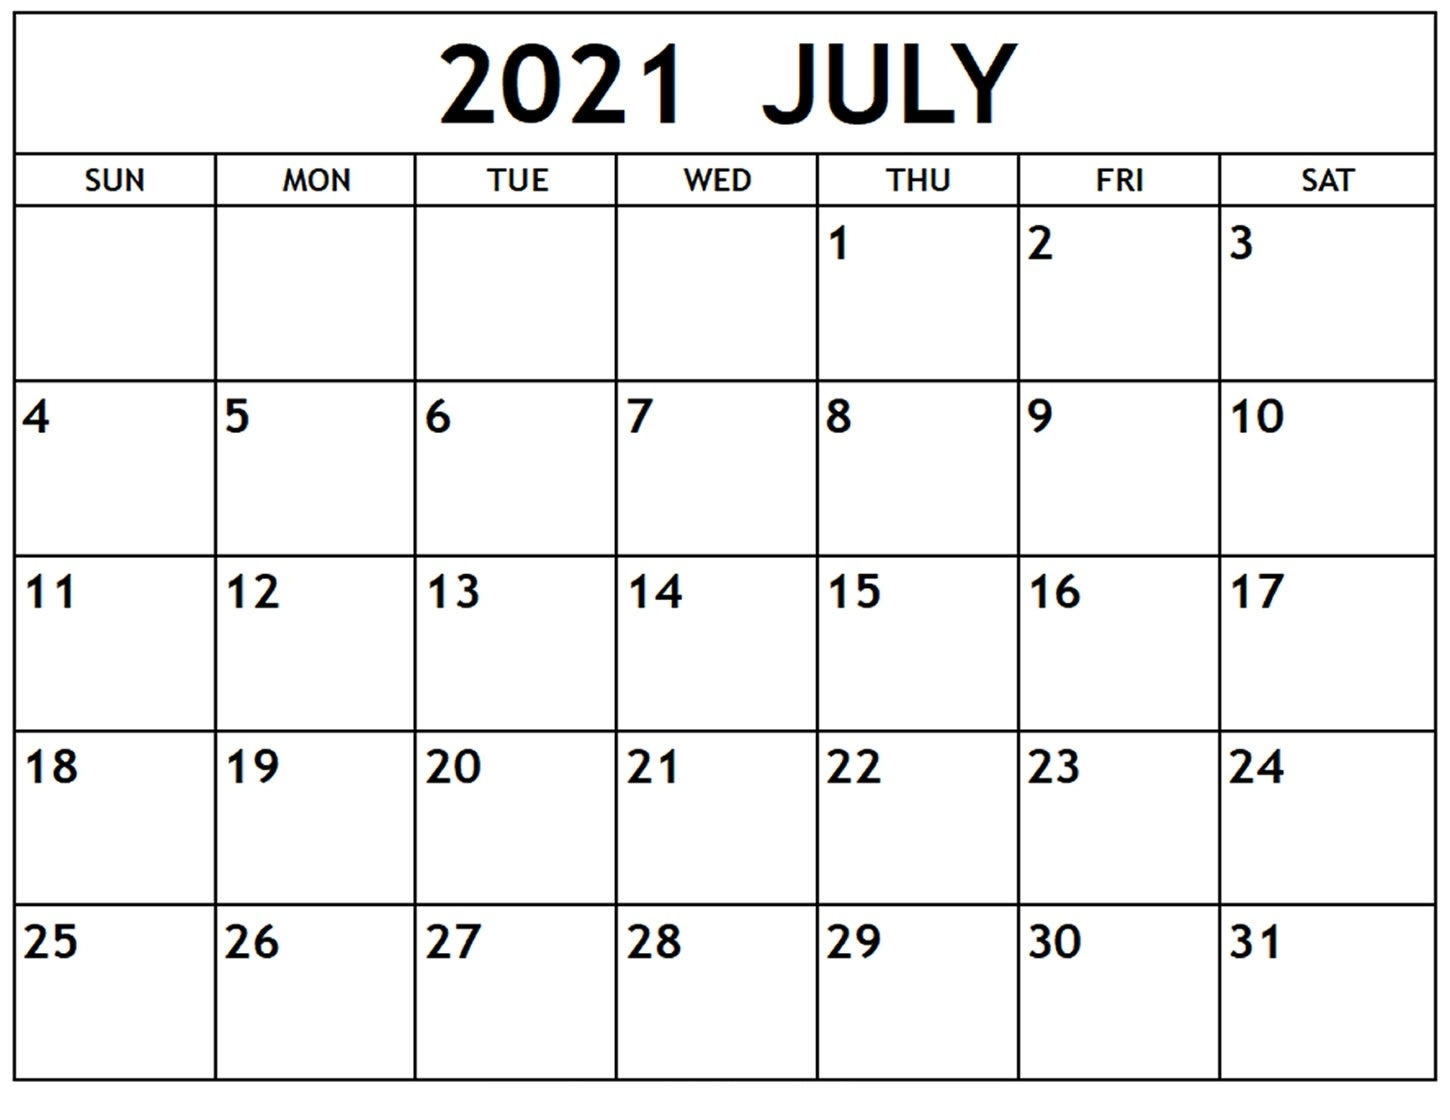 Blank July 2021 Calendar Editable Pdf - Thecalendarpedia Calendar For The Month Of July 2021